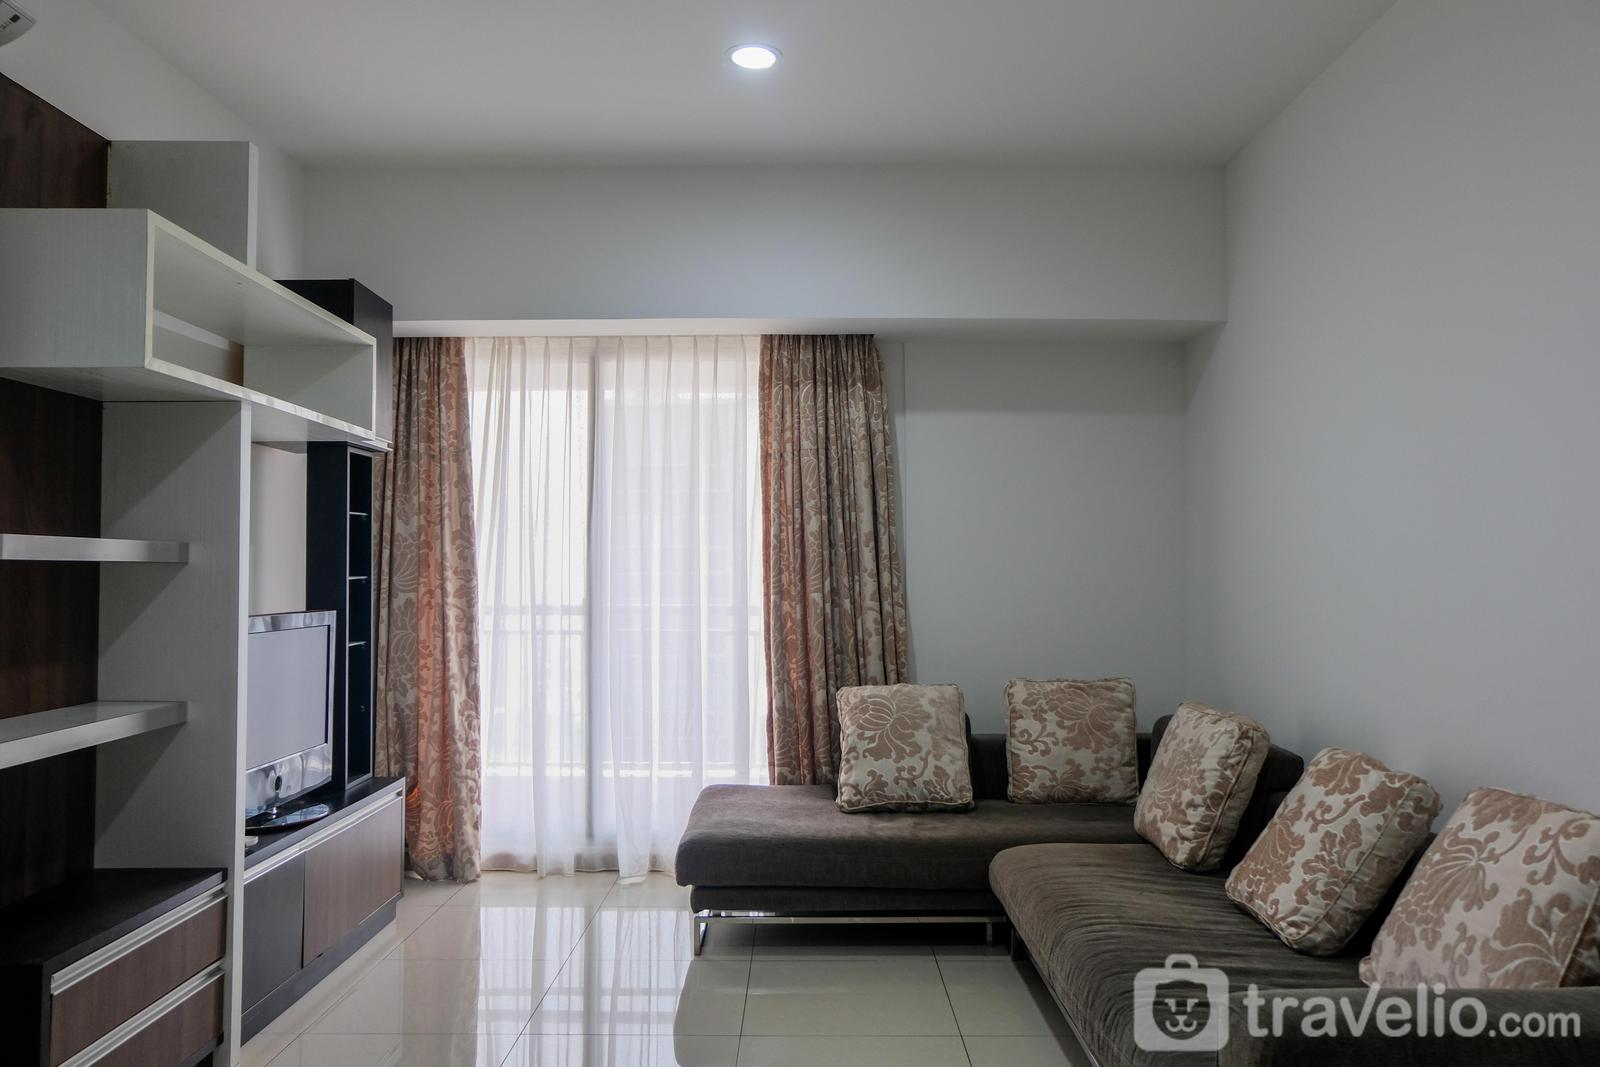 M-Town Signature - Homey 2BR Apartment at Serpong M-Town Signature By Travelio